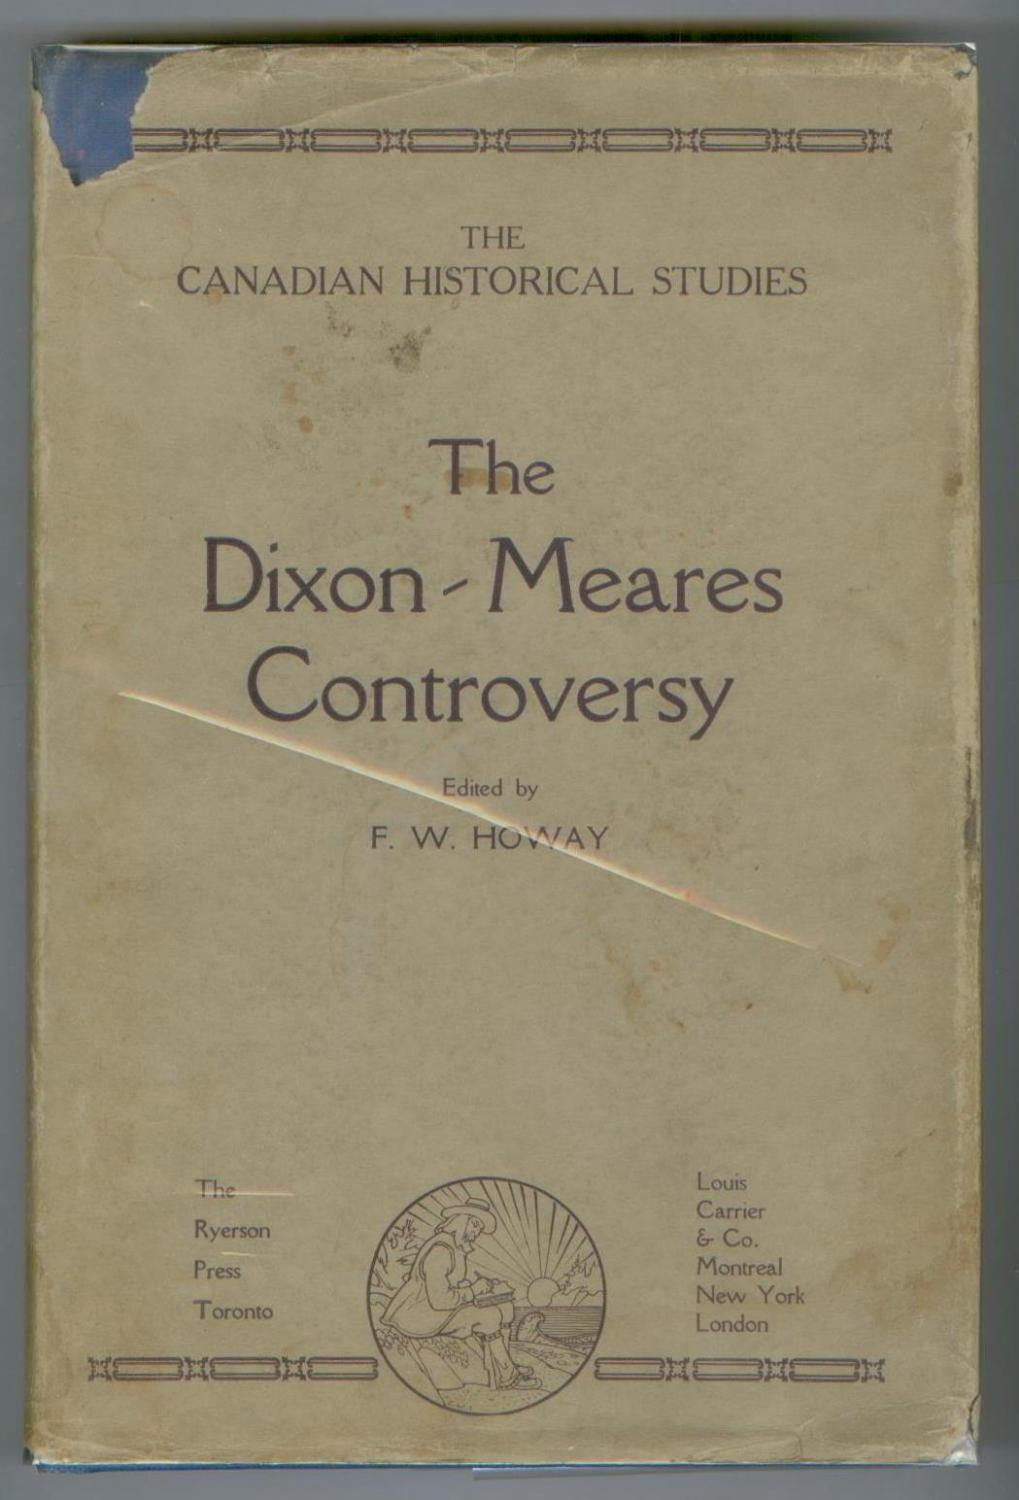 The Dixon-Meares Controversy